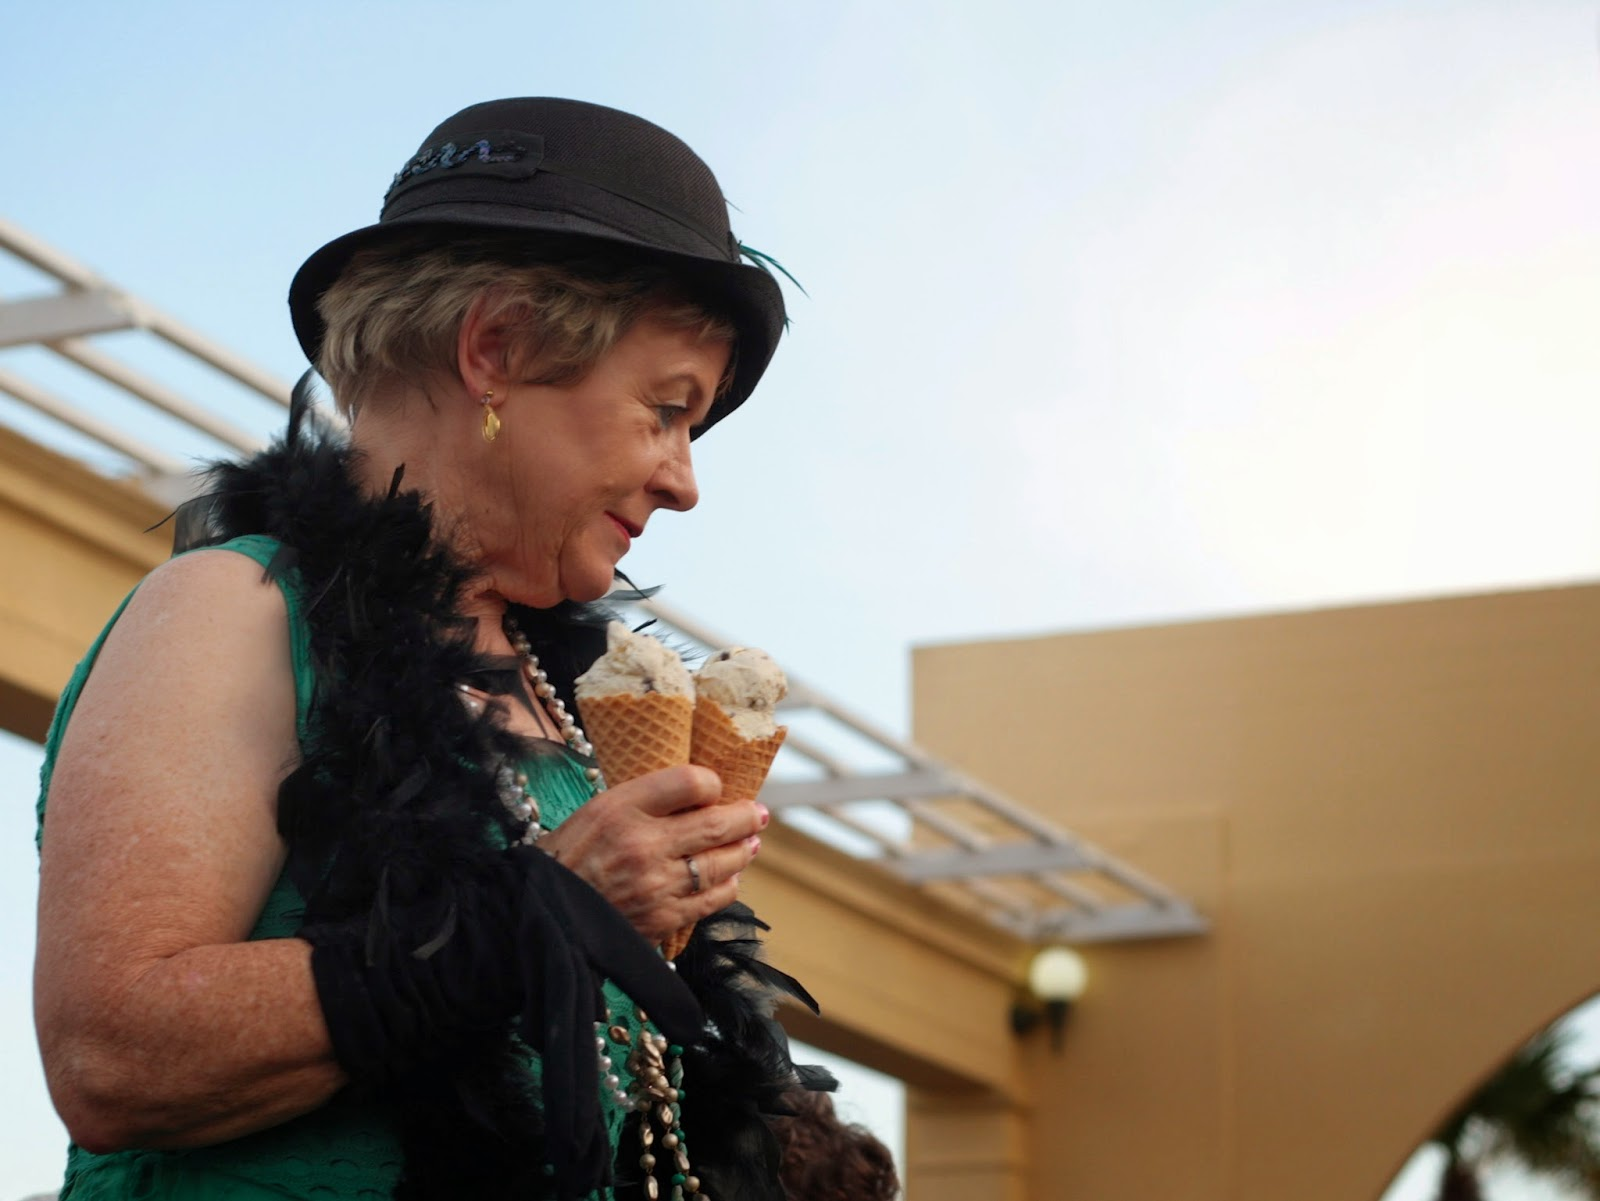 An older woman wearing a cloche hat and a feather boa carries ice creams.